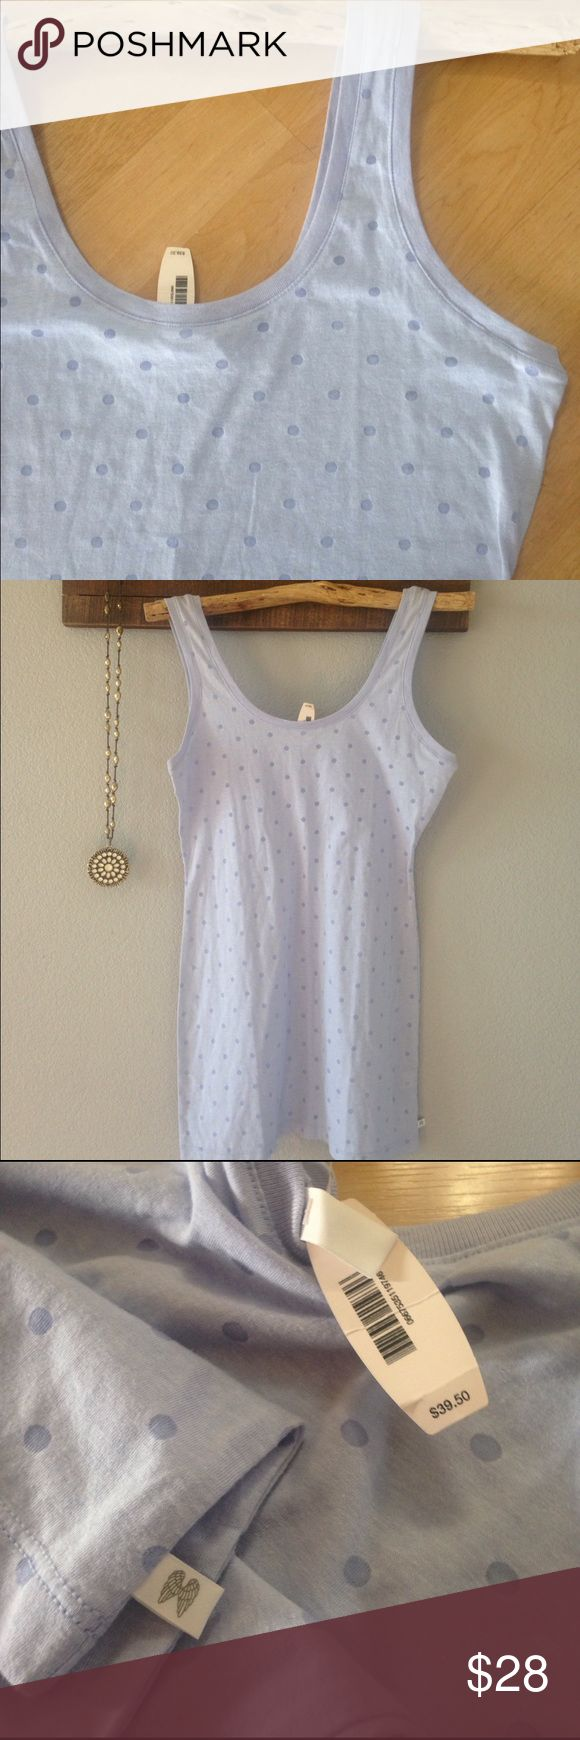 """NWT Victoria's Secret Polka dot tunic swim cover NWT Victoria's Secret Polka dot tunic swim suit bikini 👙 cover up. Soft lavender with (peek-a-boo) mesh polka dots! 57% cotton & 43% polyester. Can also be worn as a tunic with leggings or a night gown for bed! Versatile piece. Length is 31"""". Ships same day of purchase. Victoria's Secret Swim Coverups"""